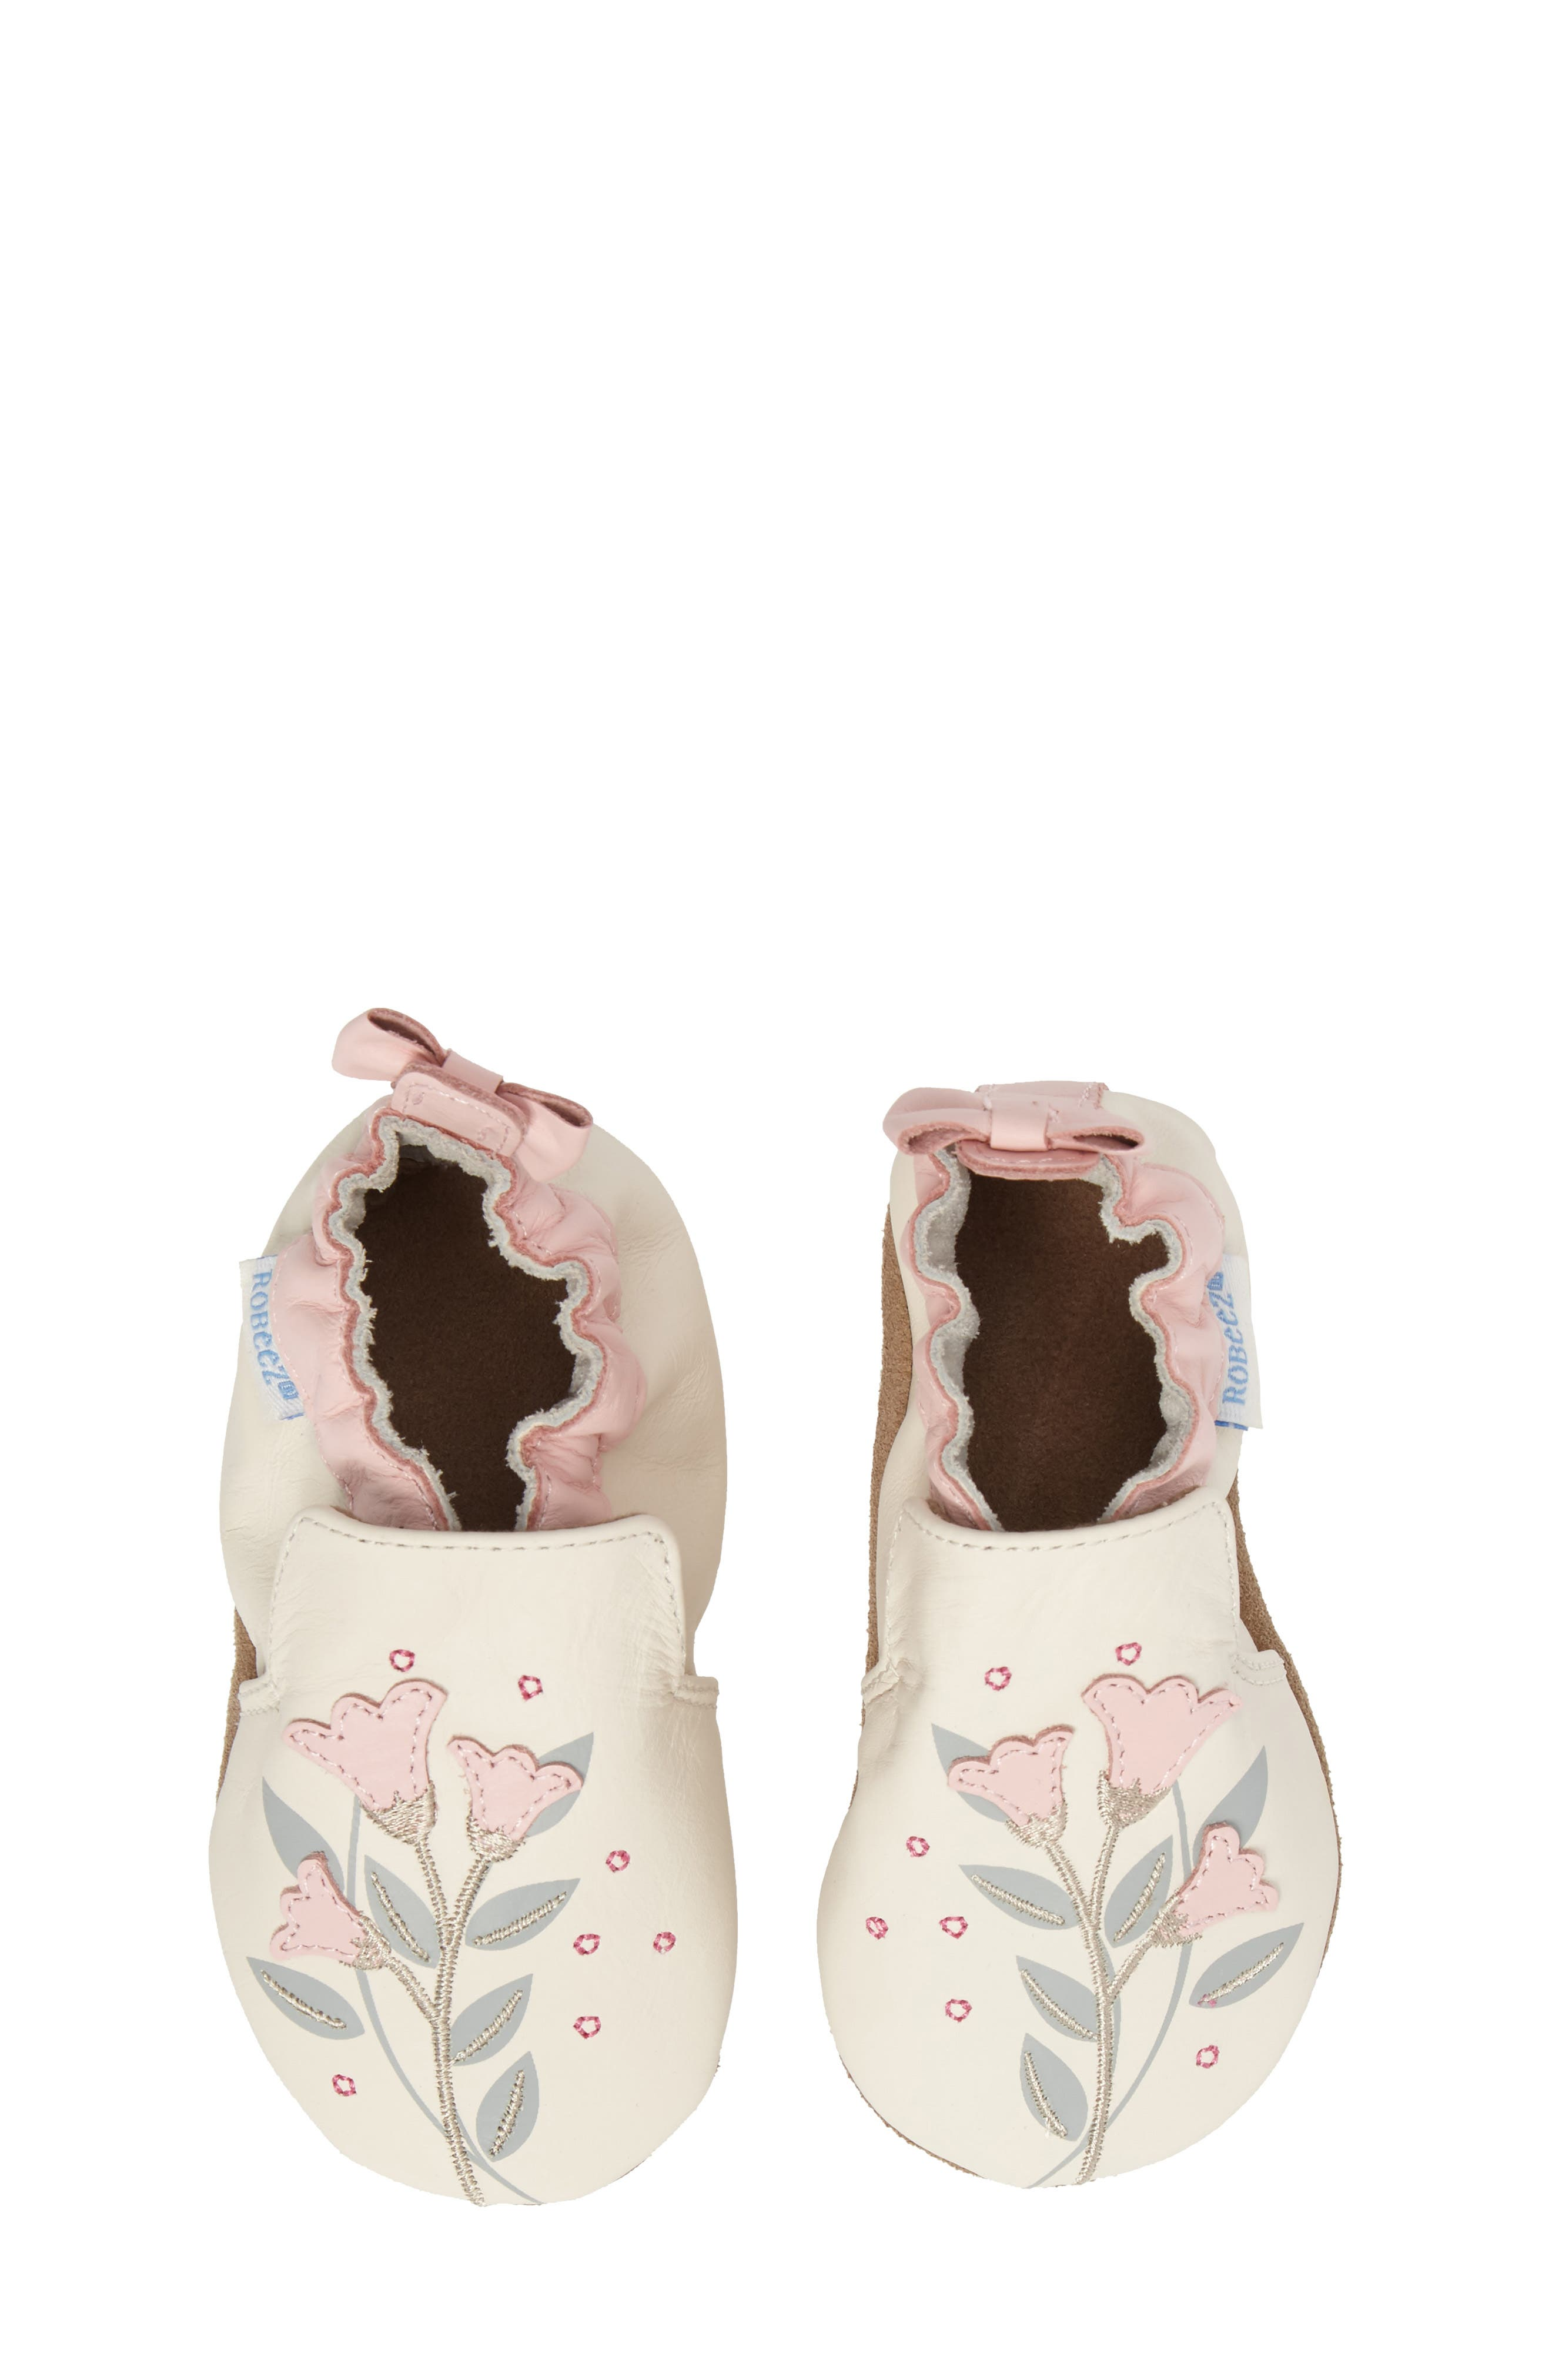 Rosealean Crib Shoe,                             Alternate thumbnail 5, color,                             Cream/ Pink Leather